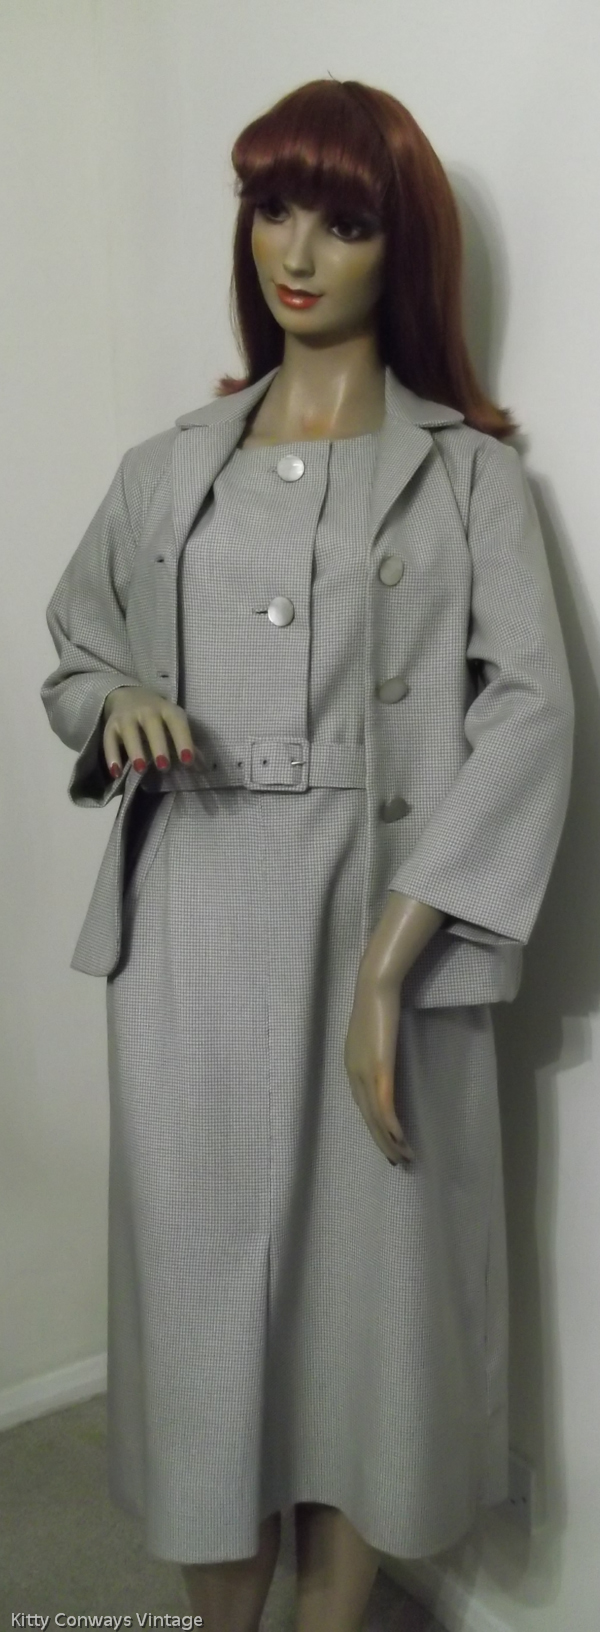 On mannequin with jacket unfastened to show dress